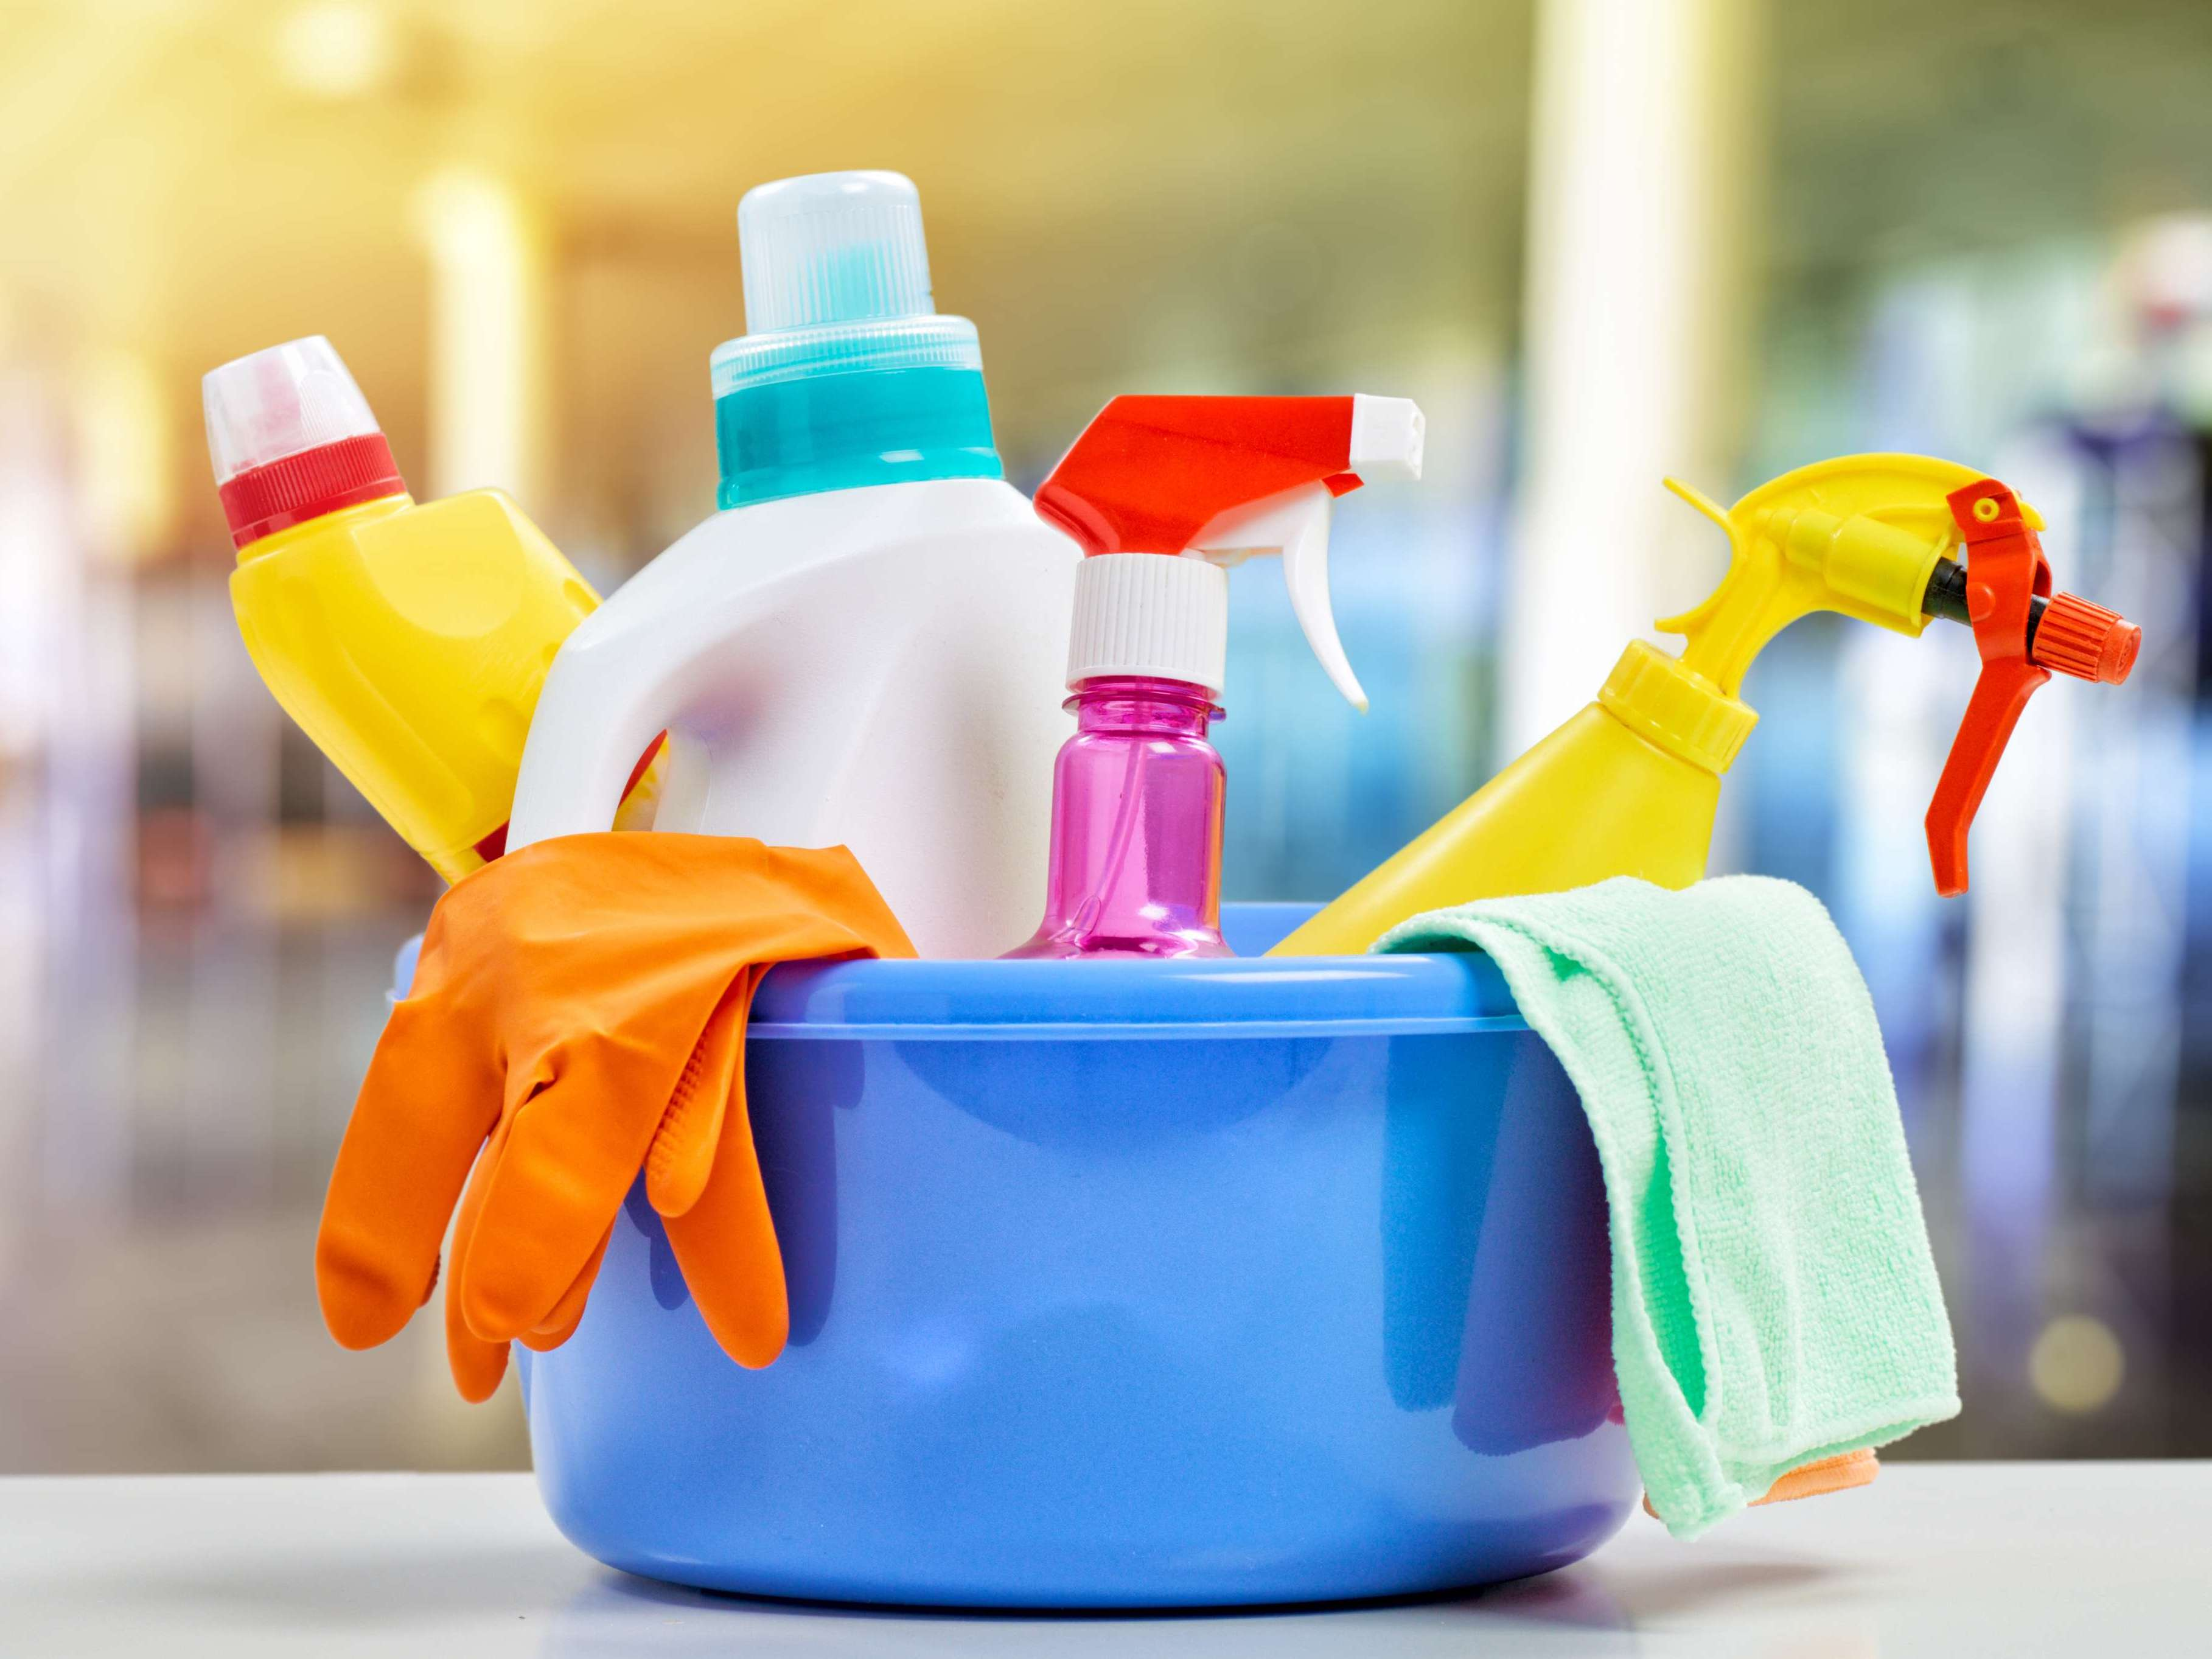 If you own a rental property, utilize our Airbnb cleaning service after your guests check out.